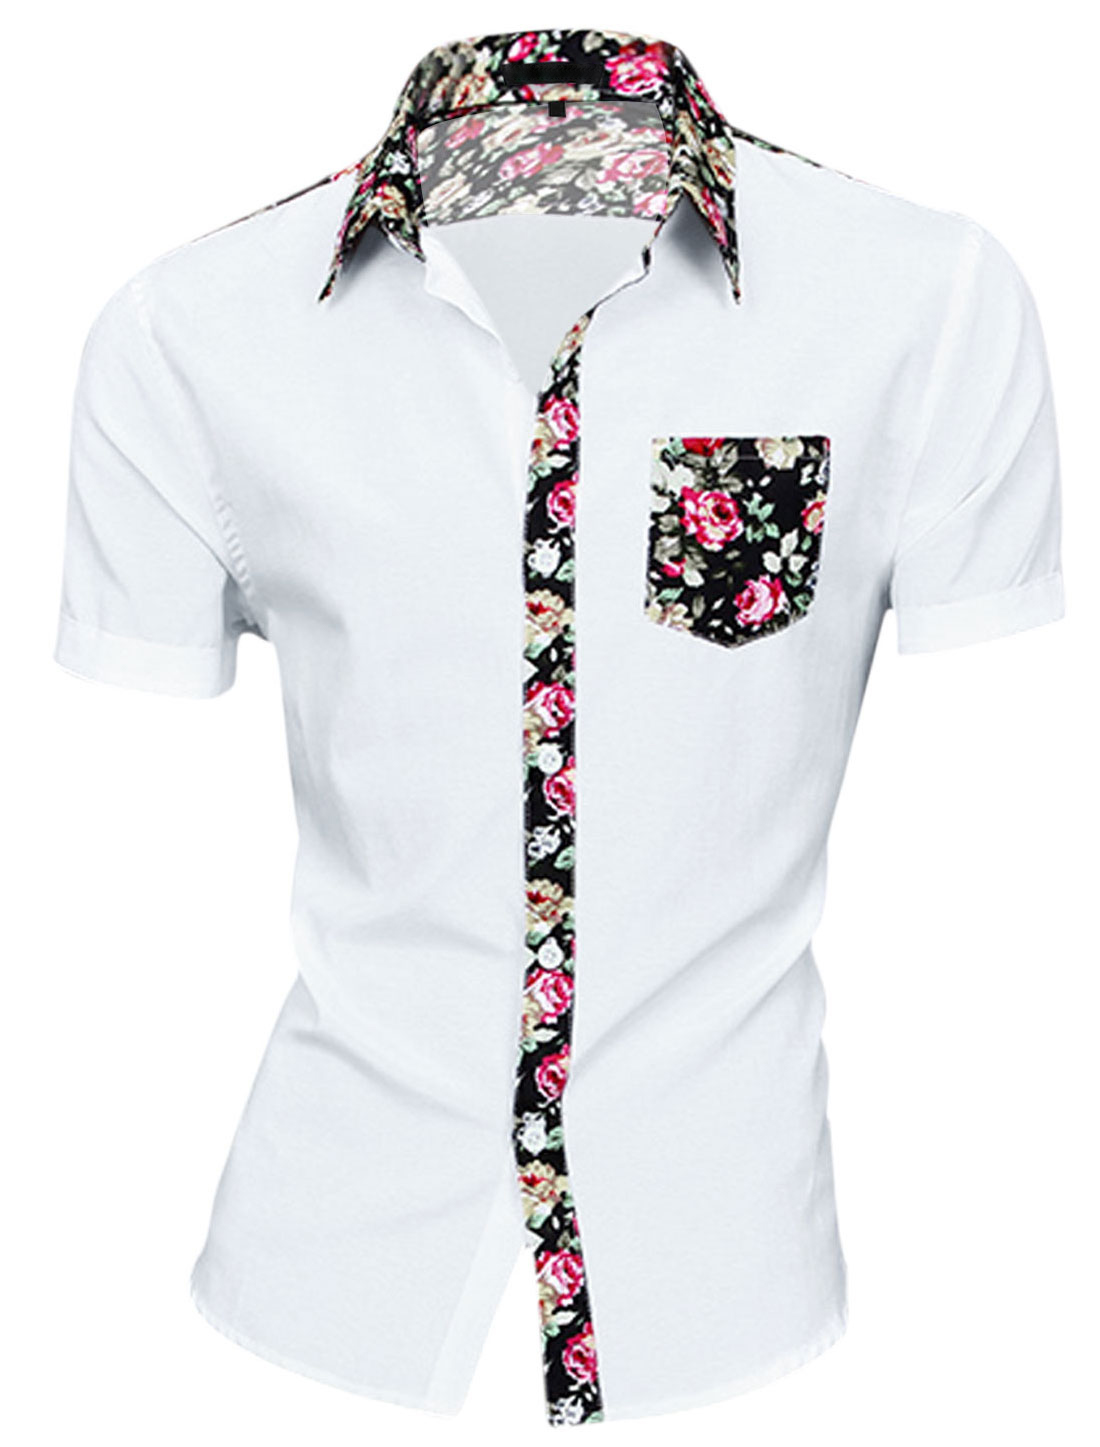 Men Point Collar Floral Print Single Breasted Shirts White M